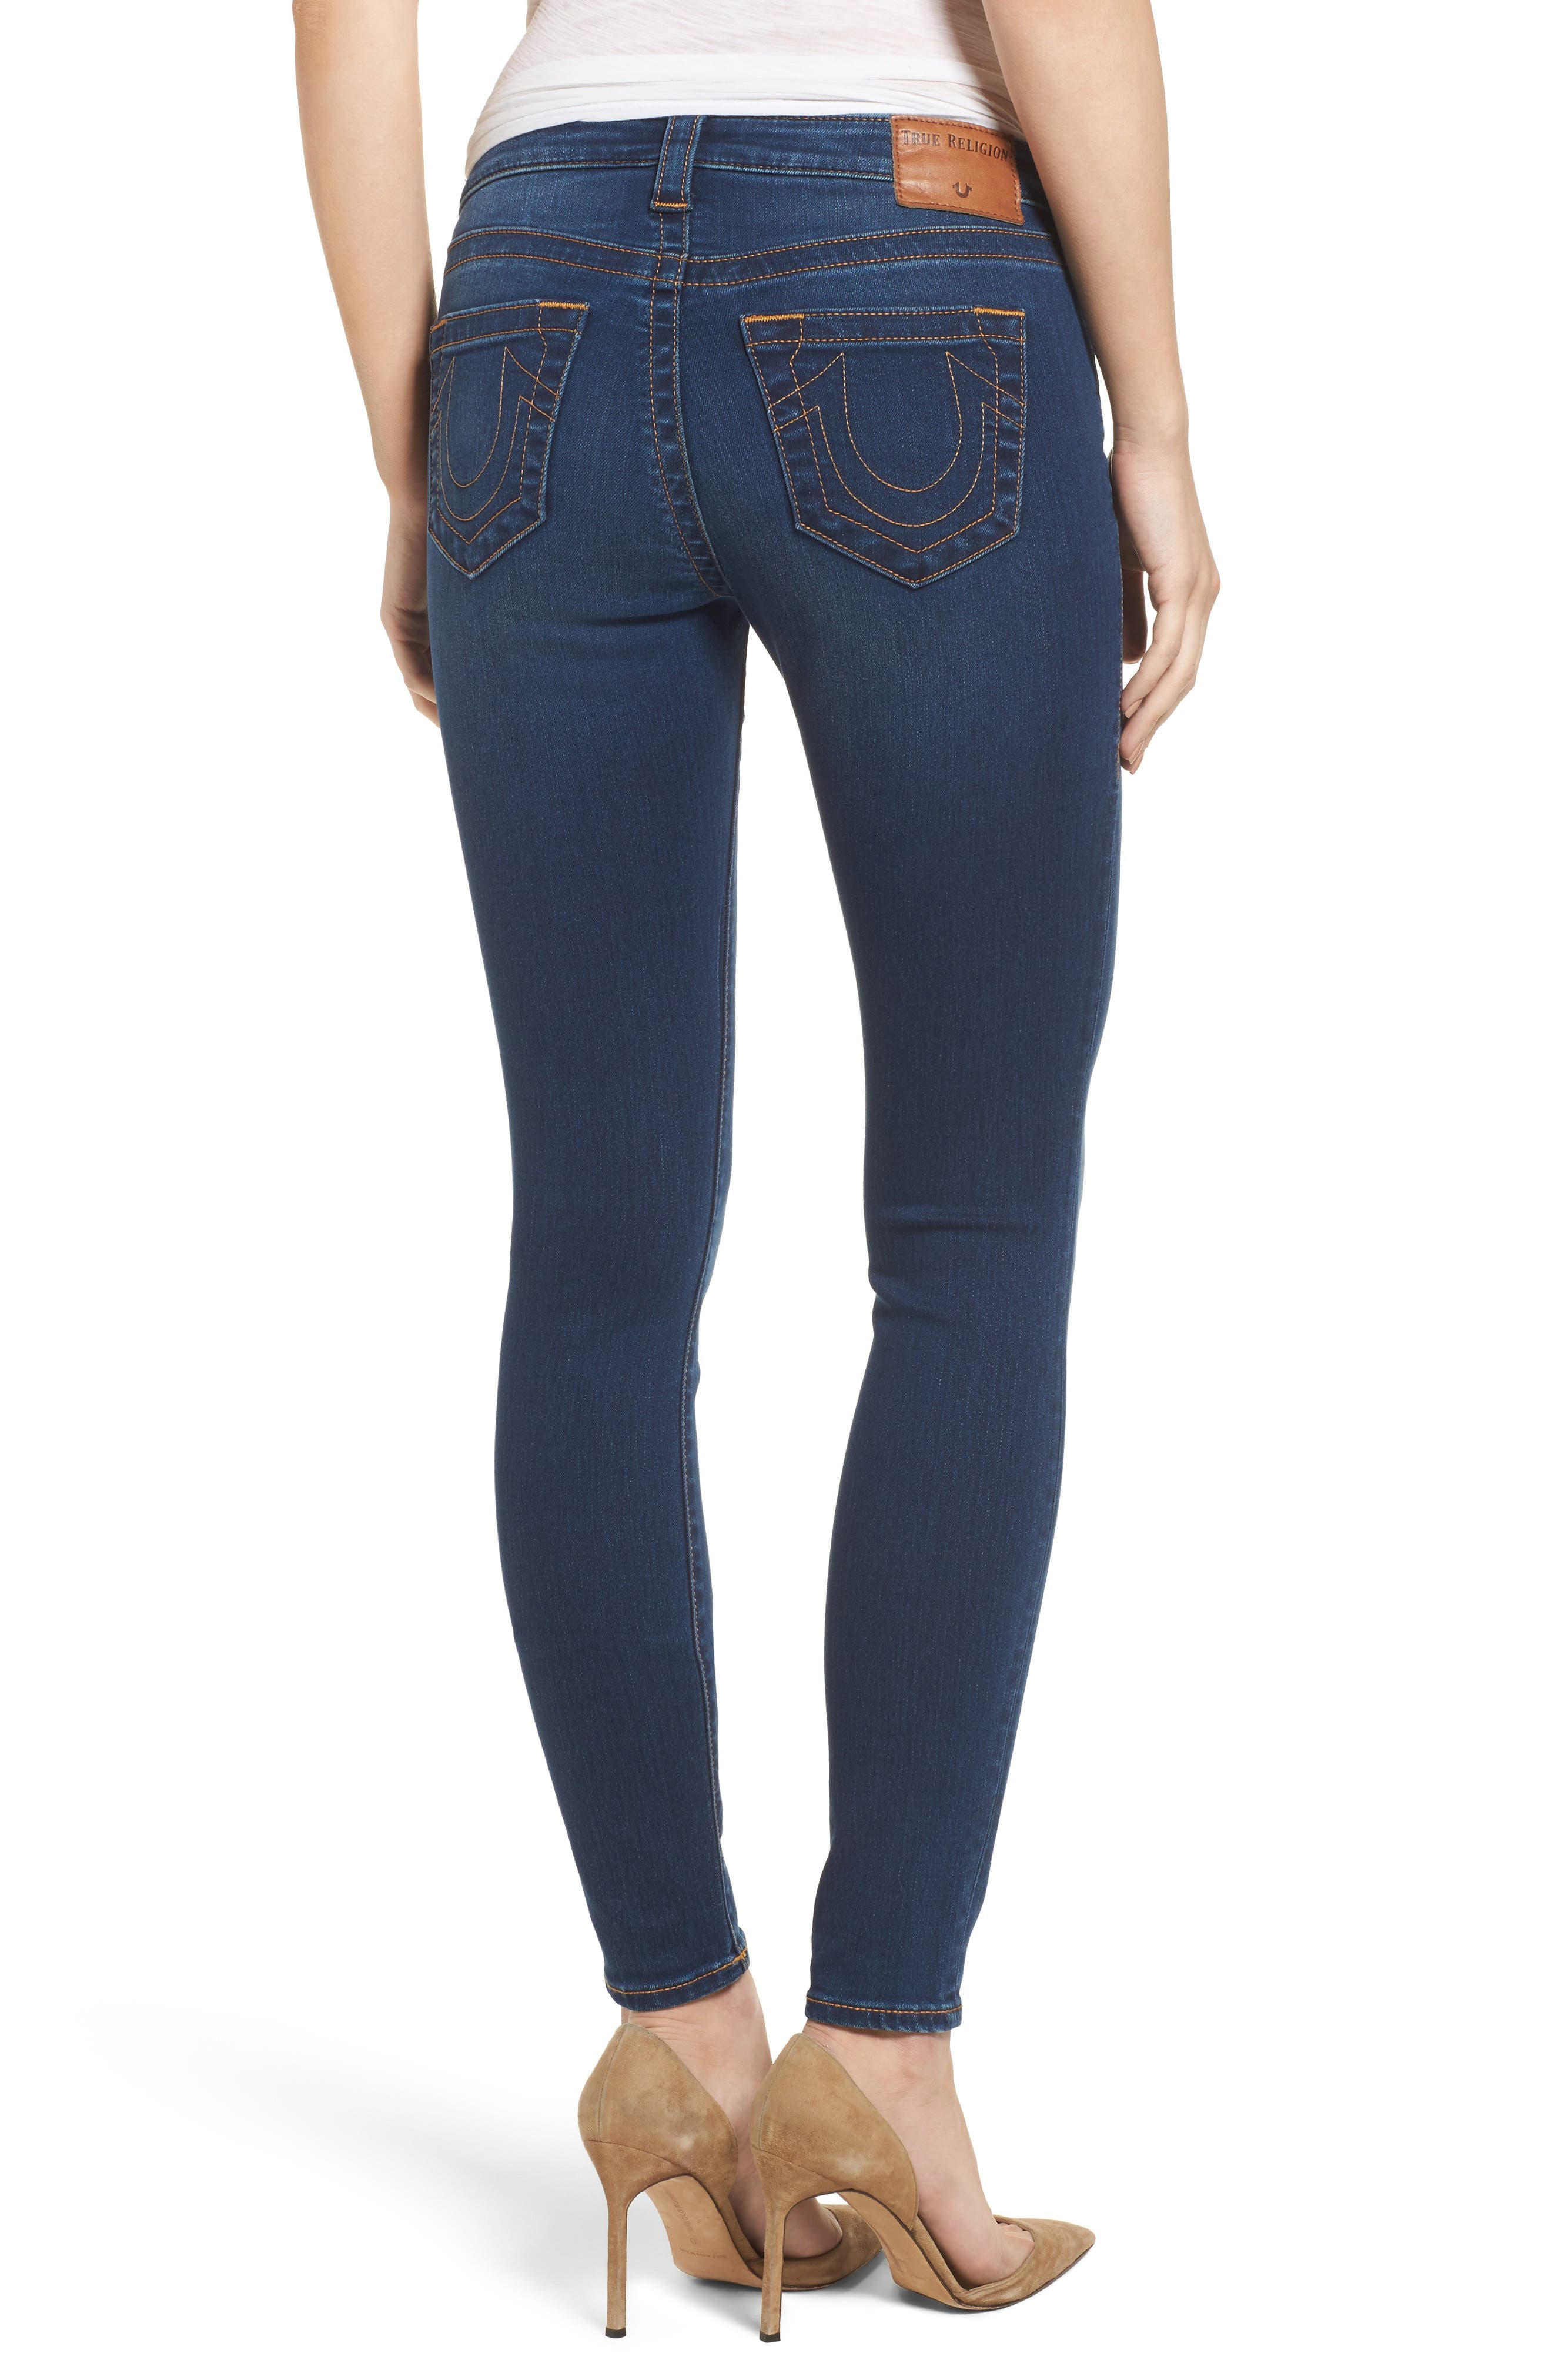 Halle Mid Rise Skinny Jeans,                             Alternate thumbnail 2, color,                             Lands End Indigo